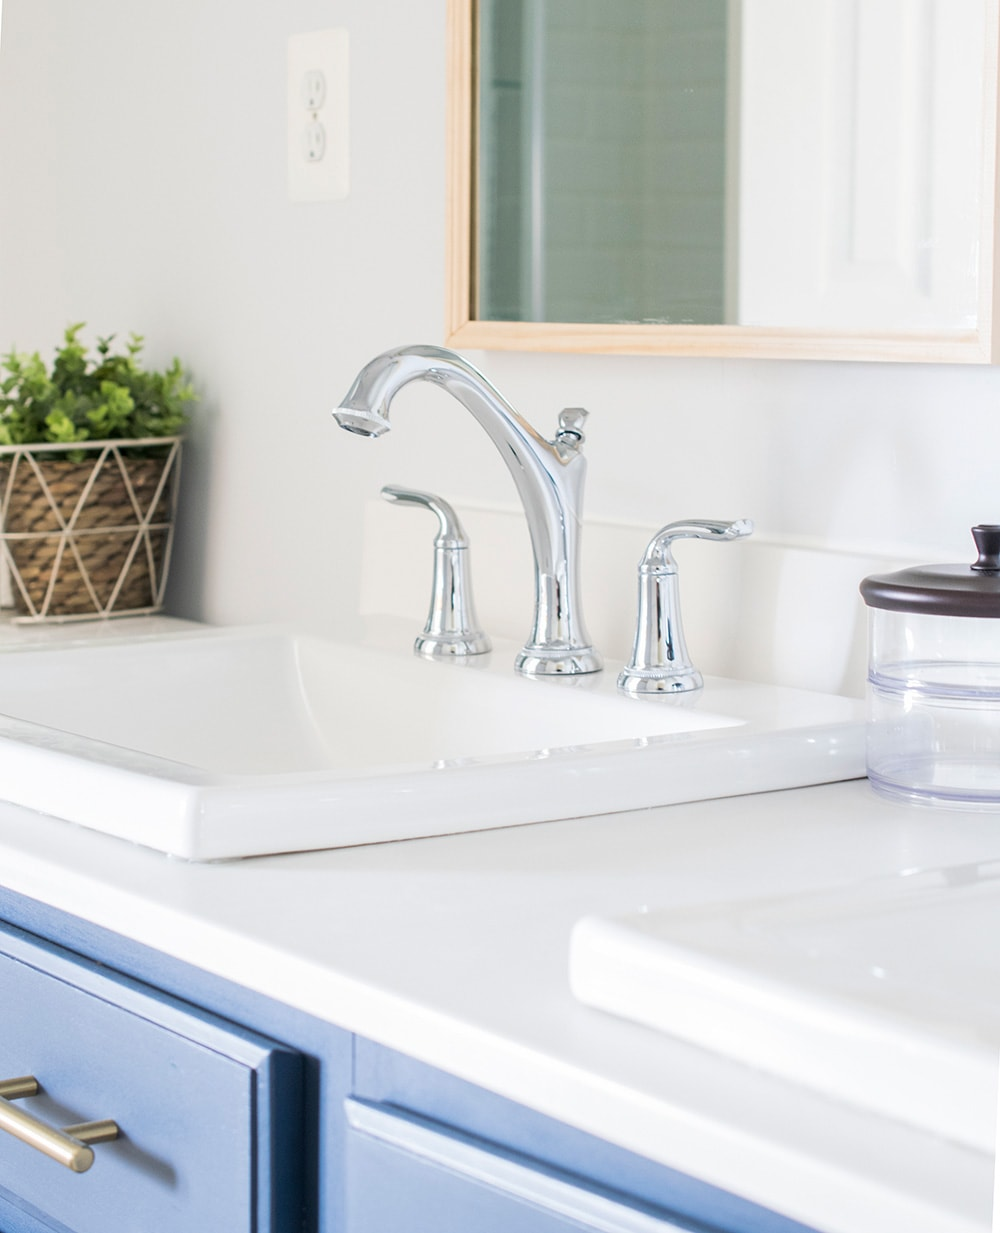 American standard patience faucets with height and studio drop in sinks